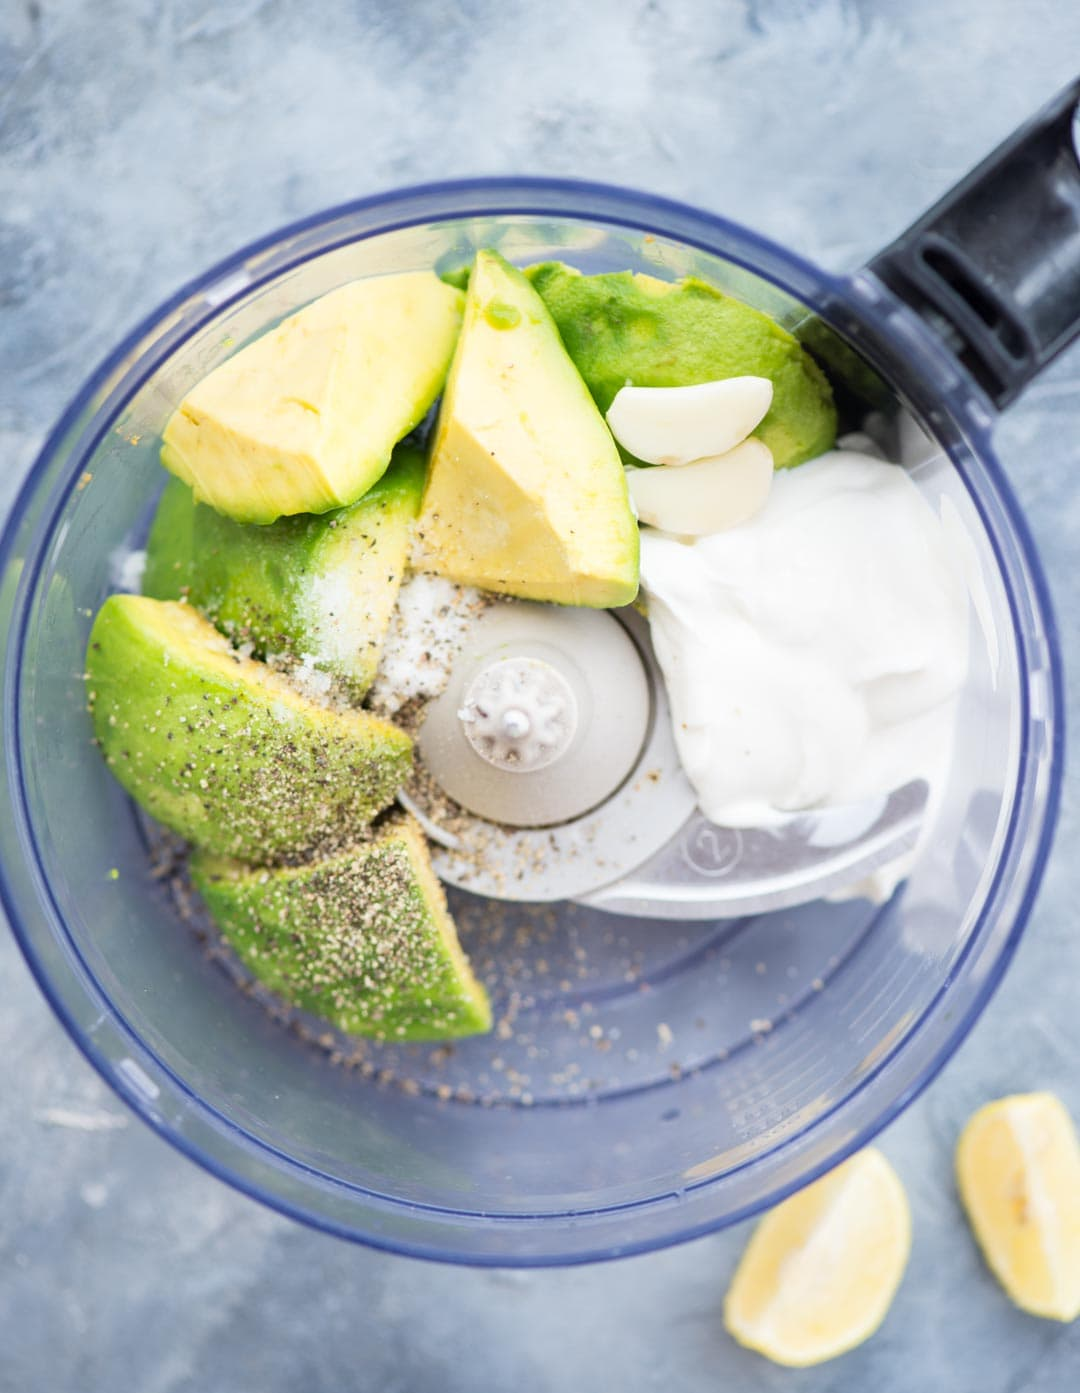 Creamy Avocado Dip made with Avocado, Sour cream, garlic, Lemon Juice is a perfect dip for Nachos, Pita and veggies. Make this for a quick snack or at your next party to impress your guests.